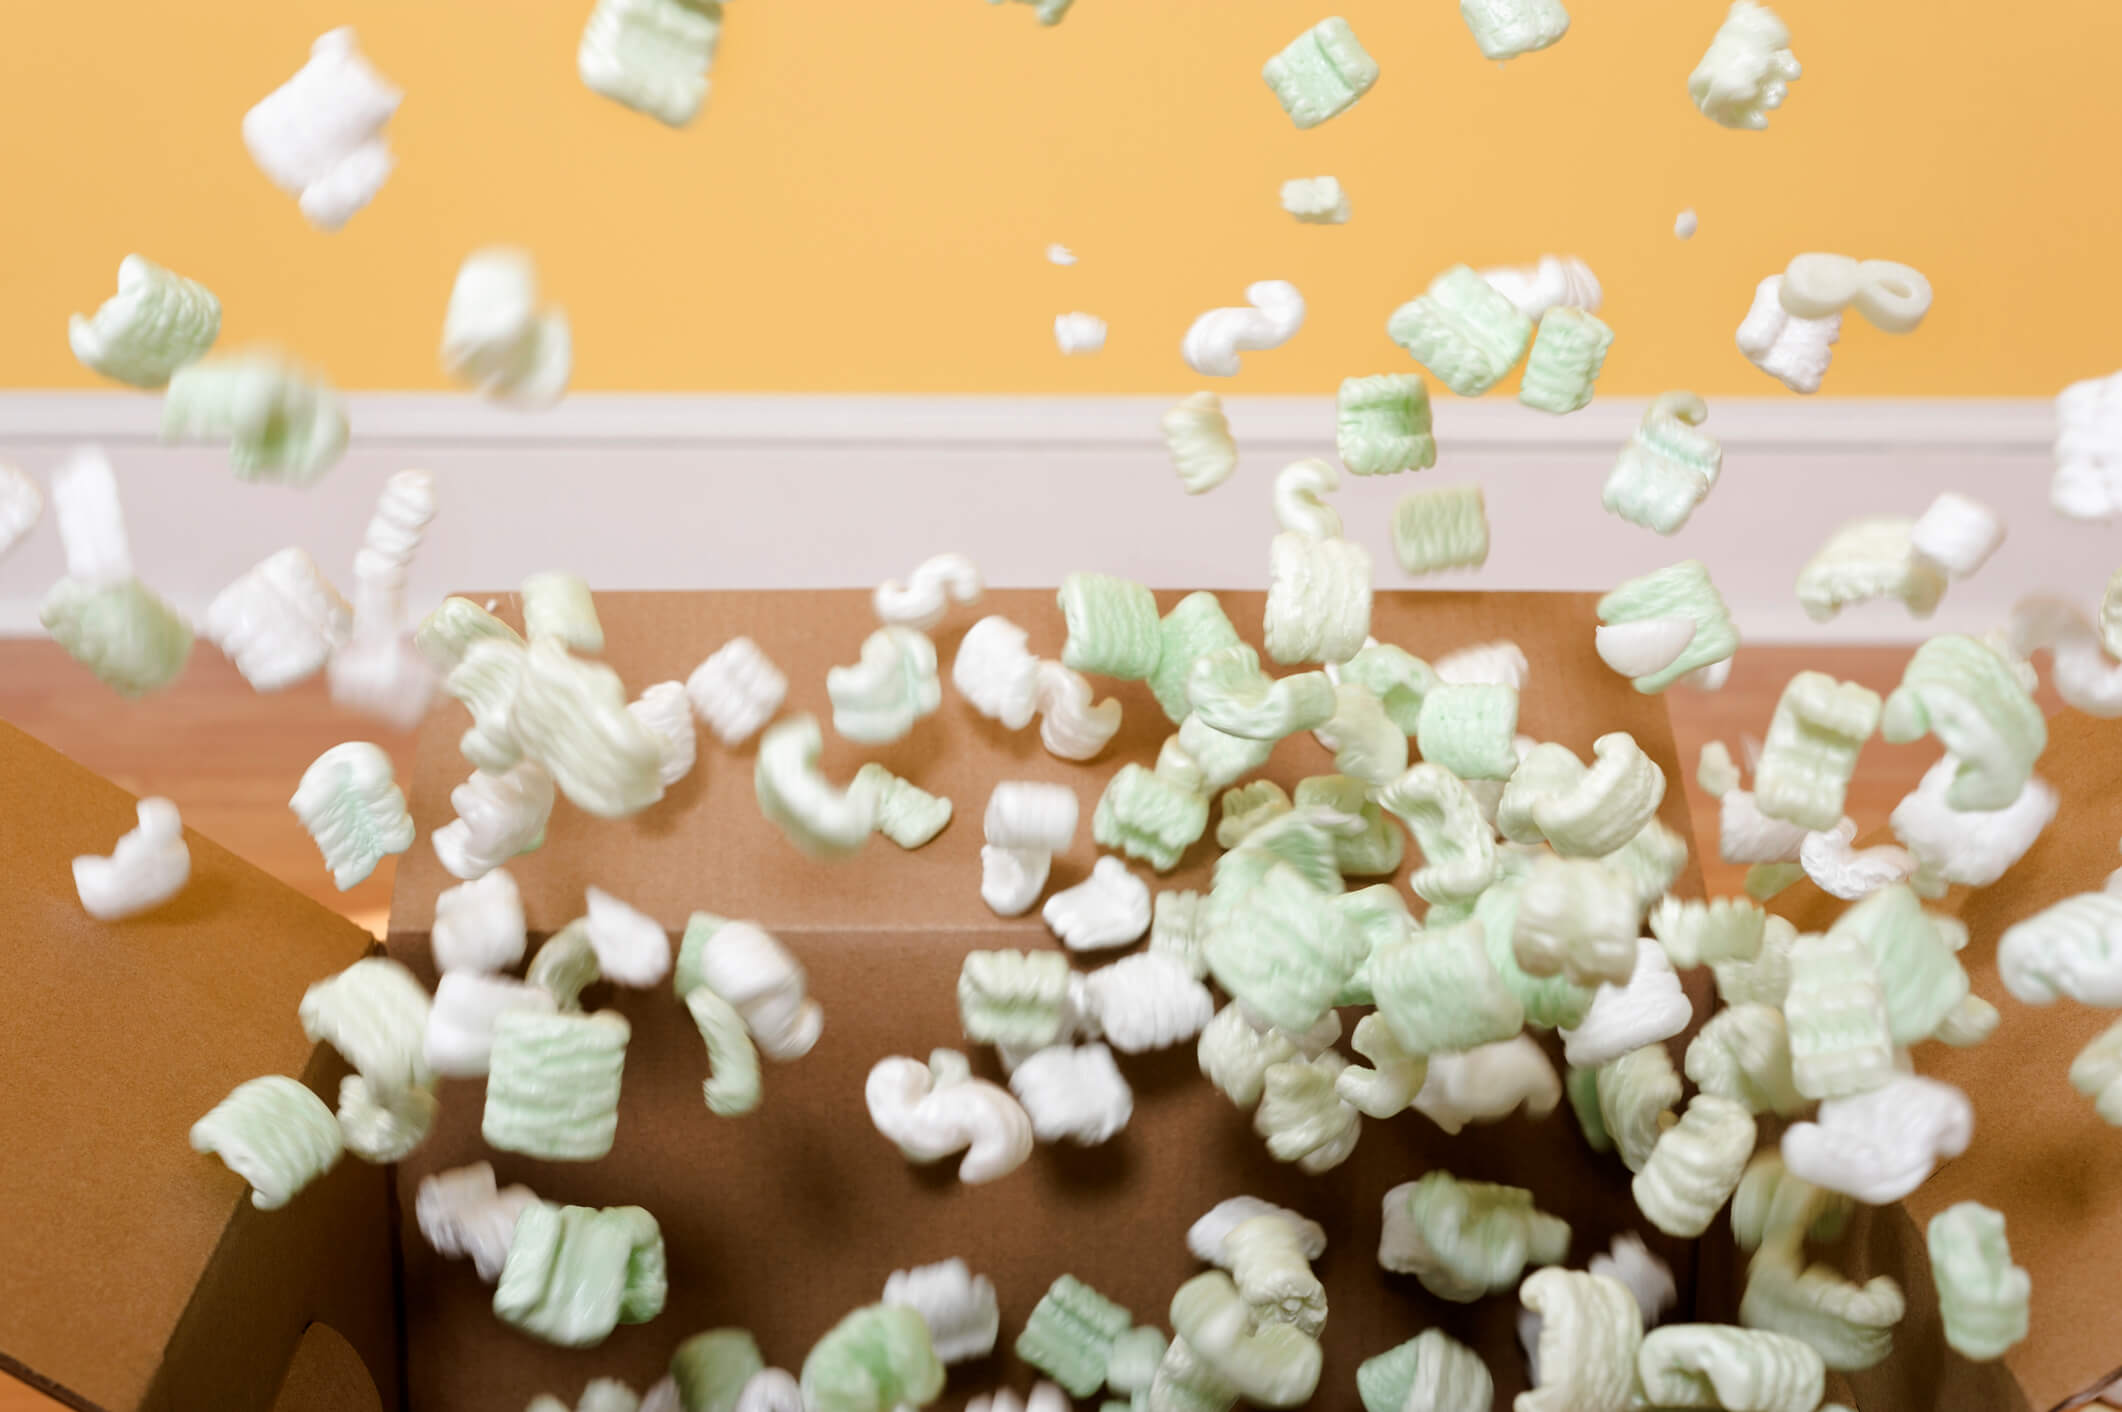 Packing peanuts burst out of a cardboard box.